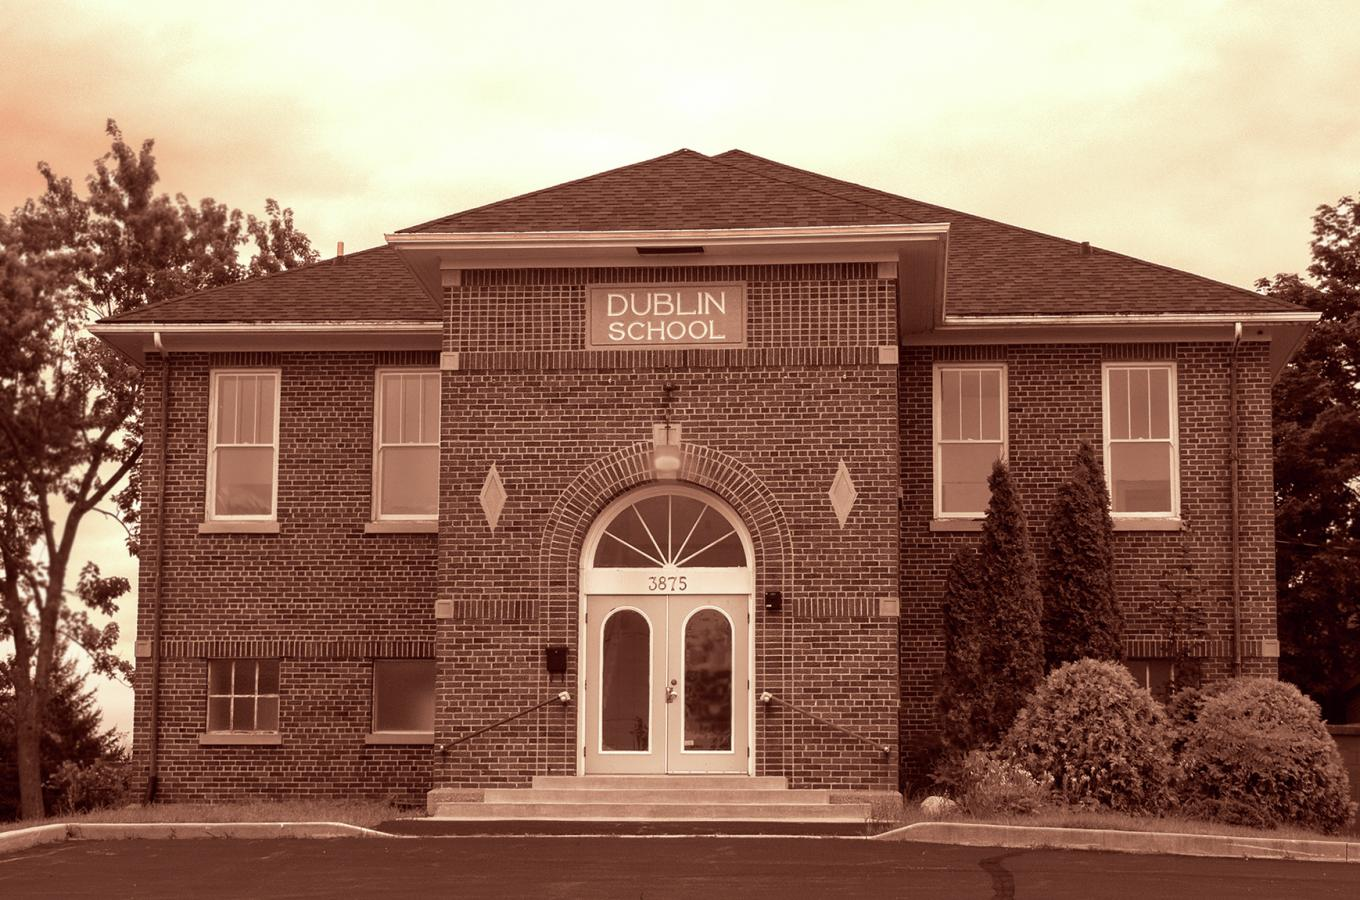 Historic Dublin School—Home of the Pleasant Prairie History Museum (opening August 2020)